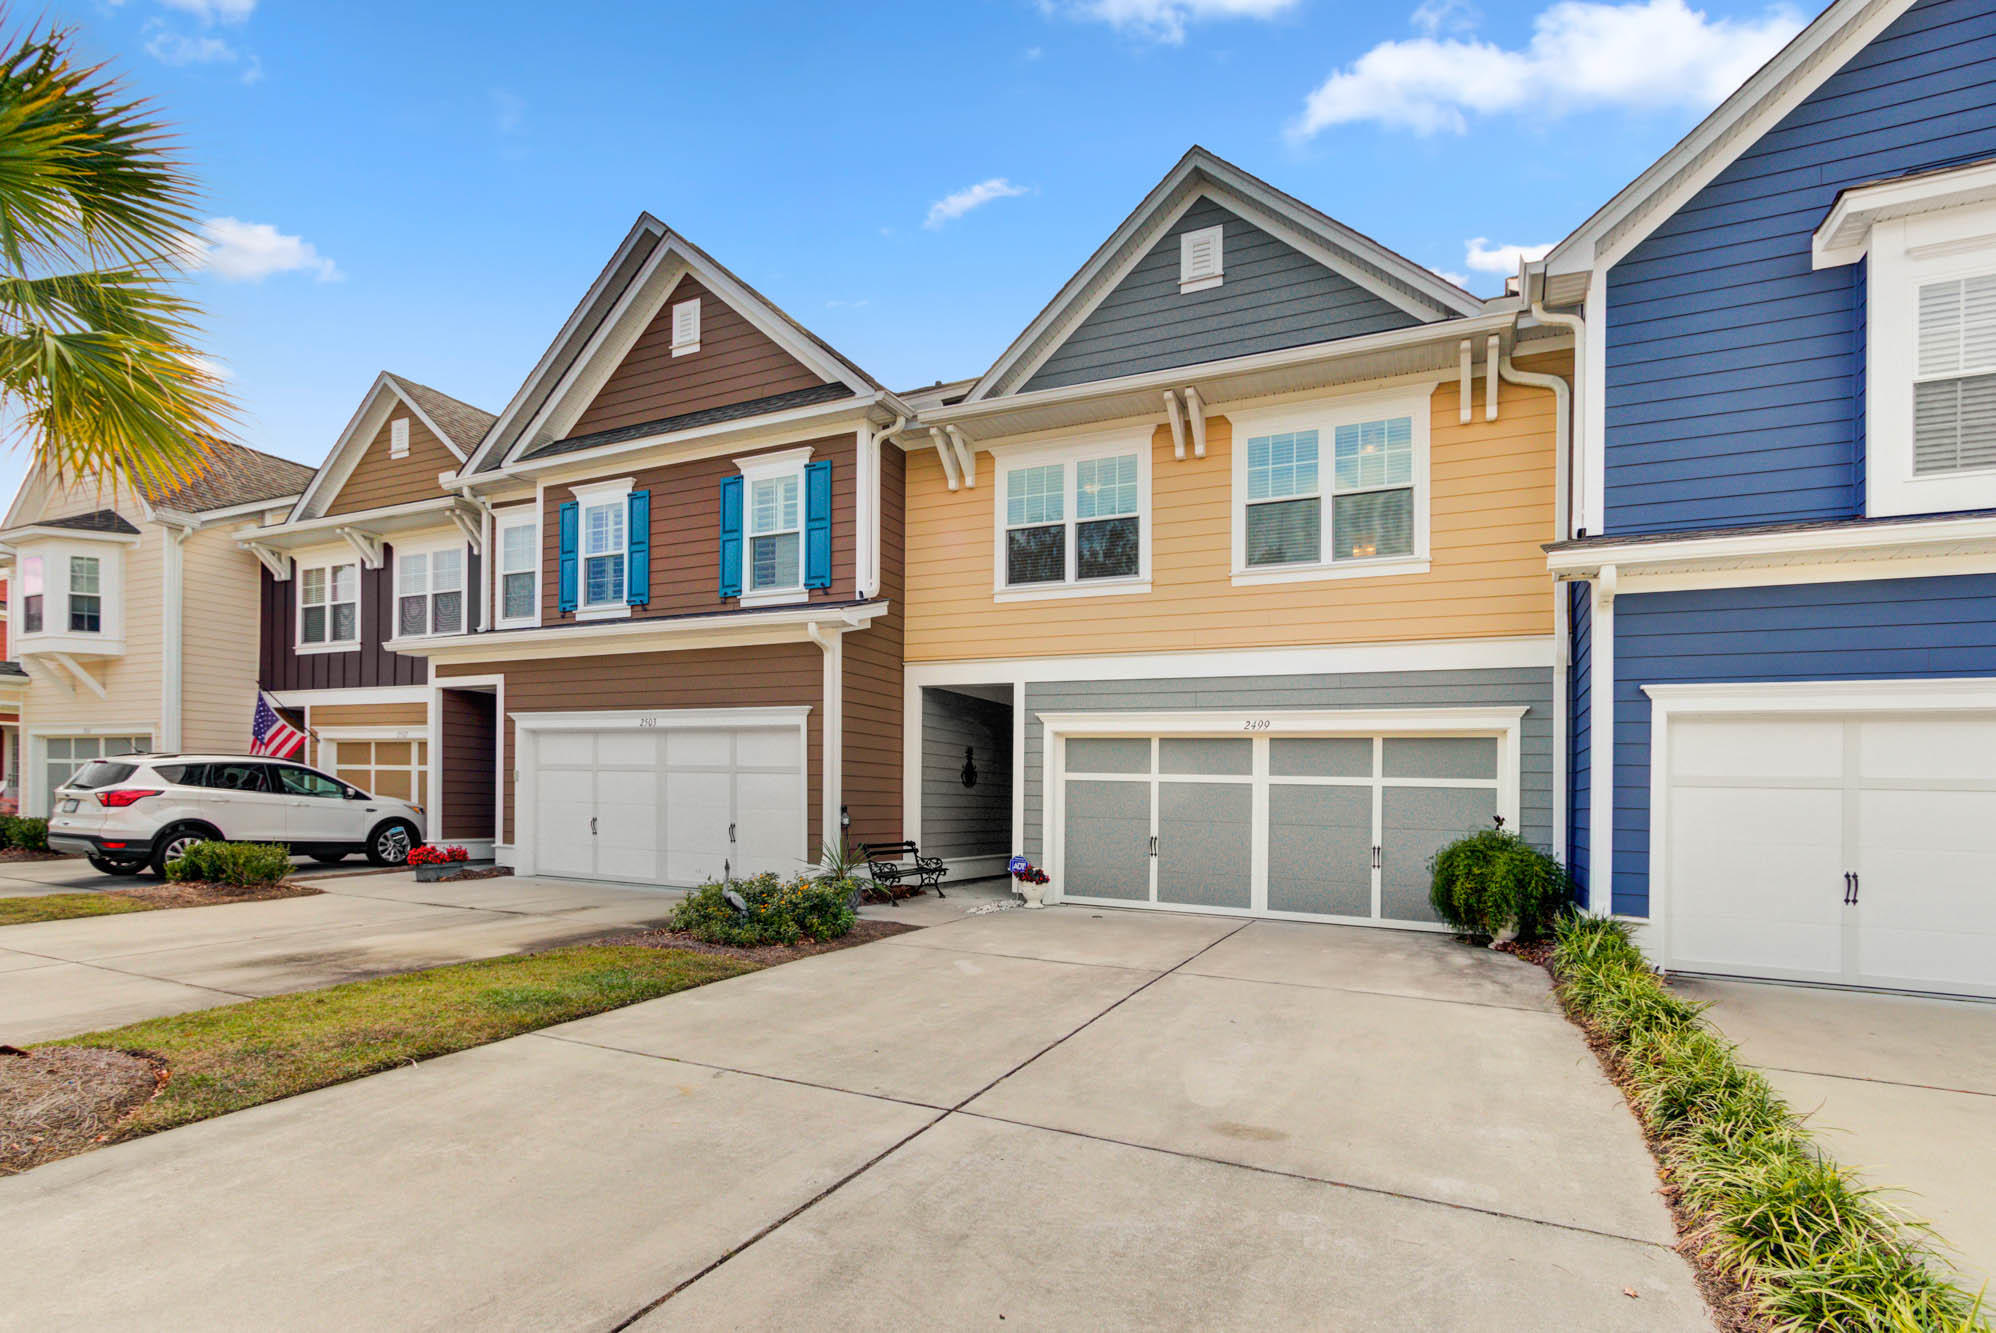 Dunes West Homes For Sale - 2499 Kings Gate, Mount Pleasant, SC - 8